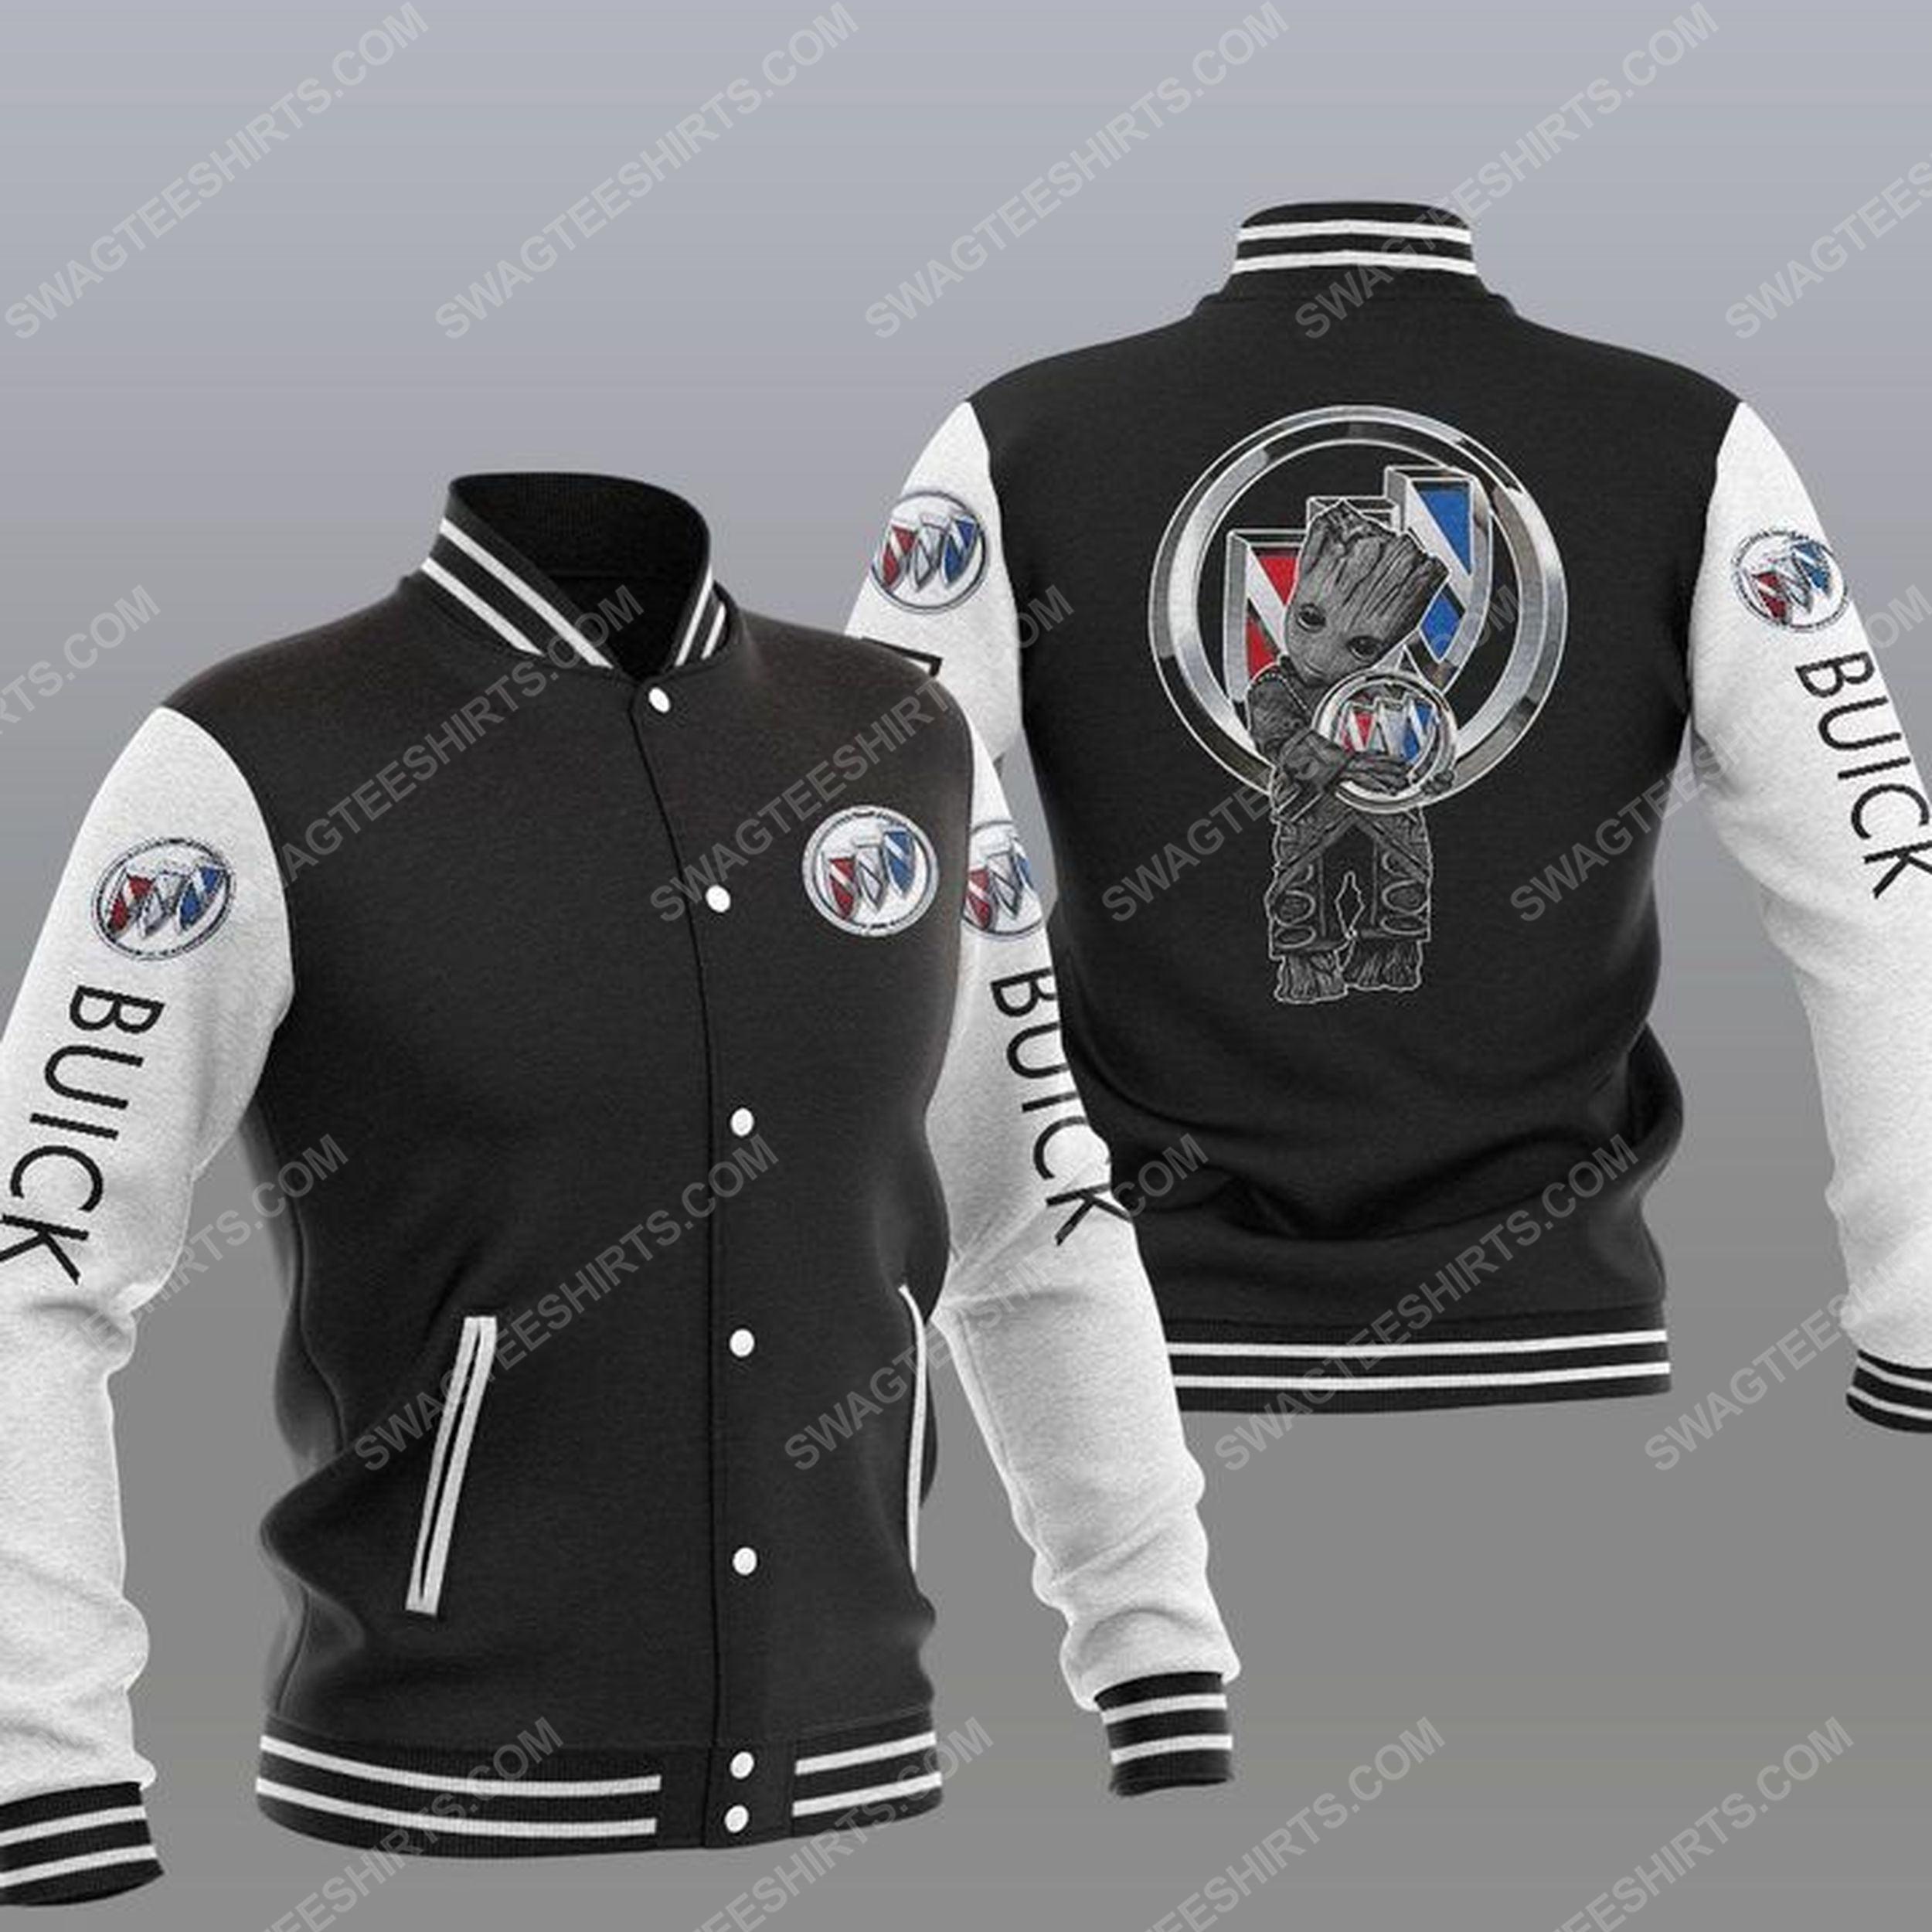 Baby groot and buick all over print baseball jacket - black 1